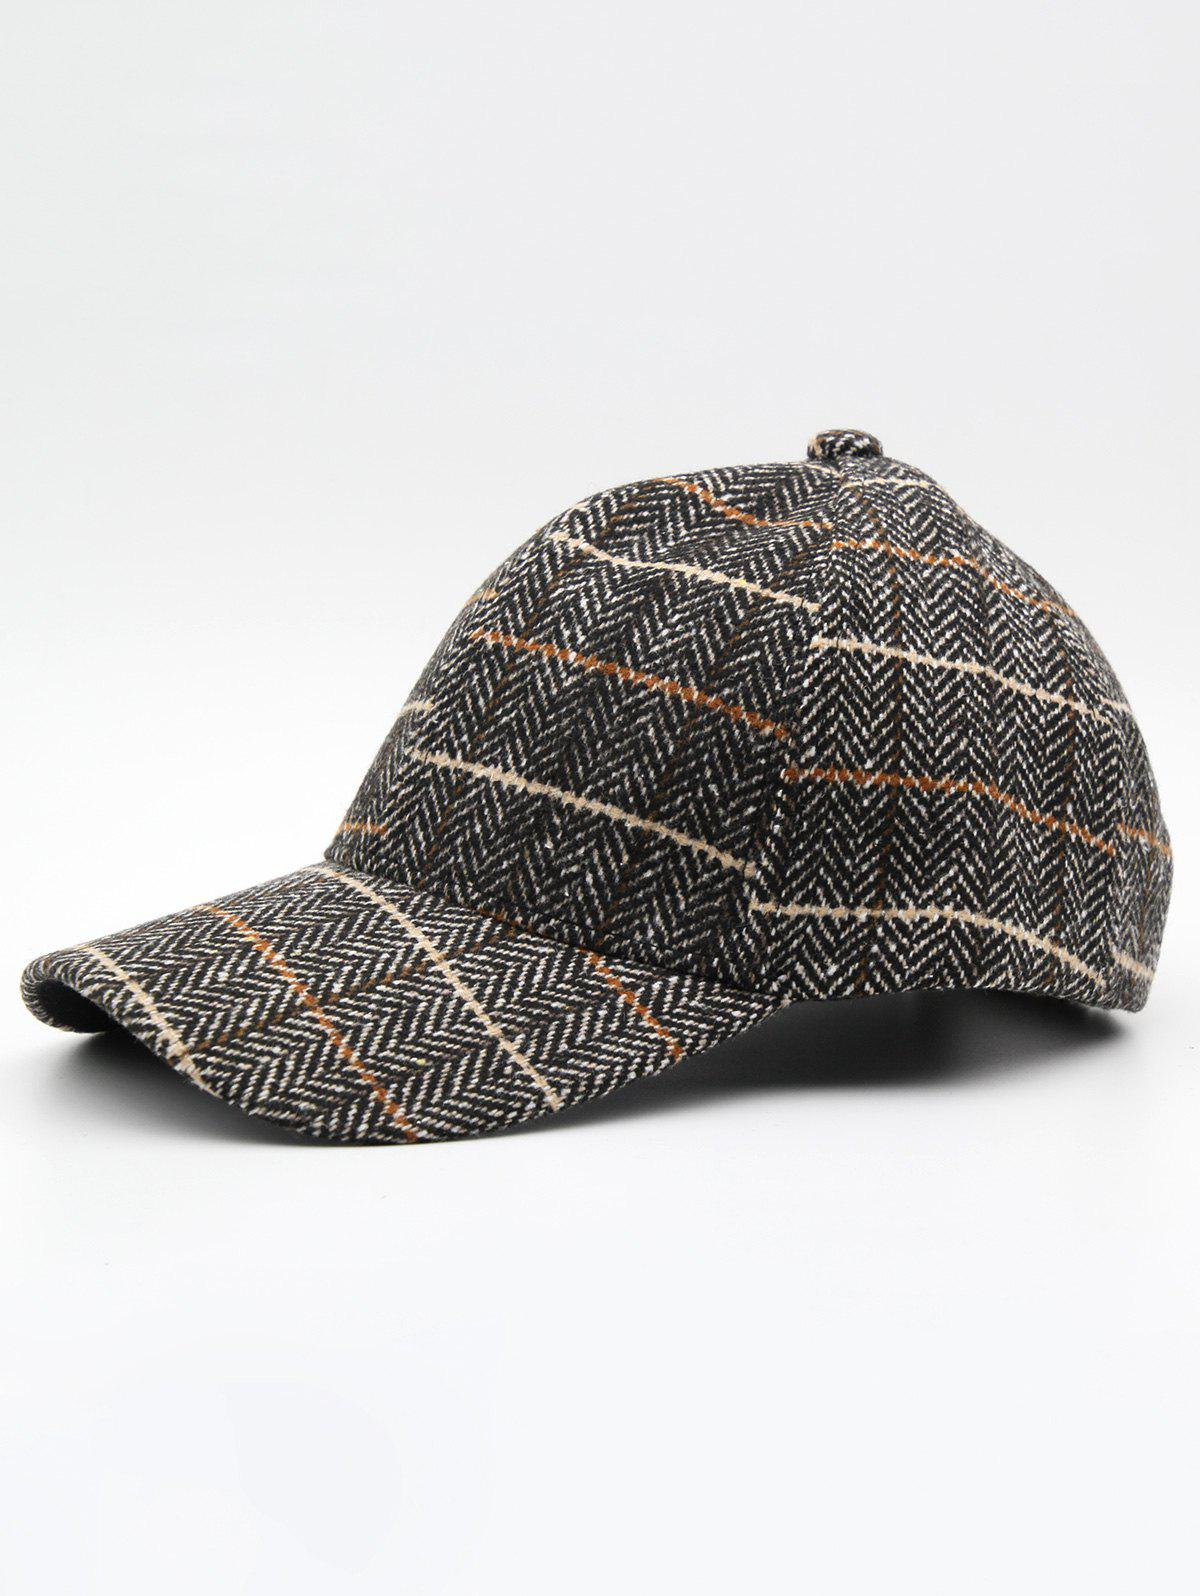 Chic Stylish Plaid Adjustable Duckbill Cap